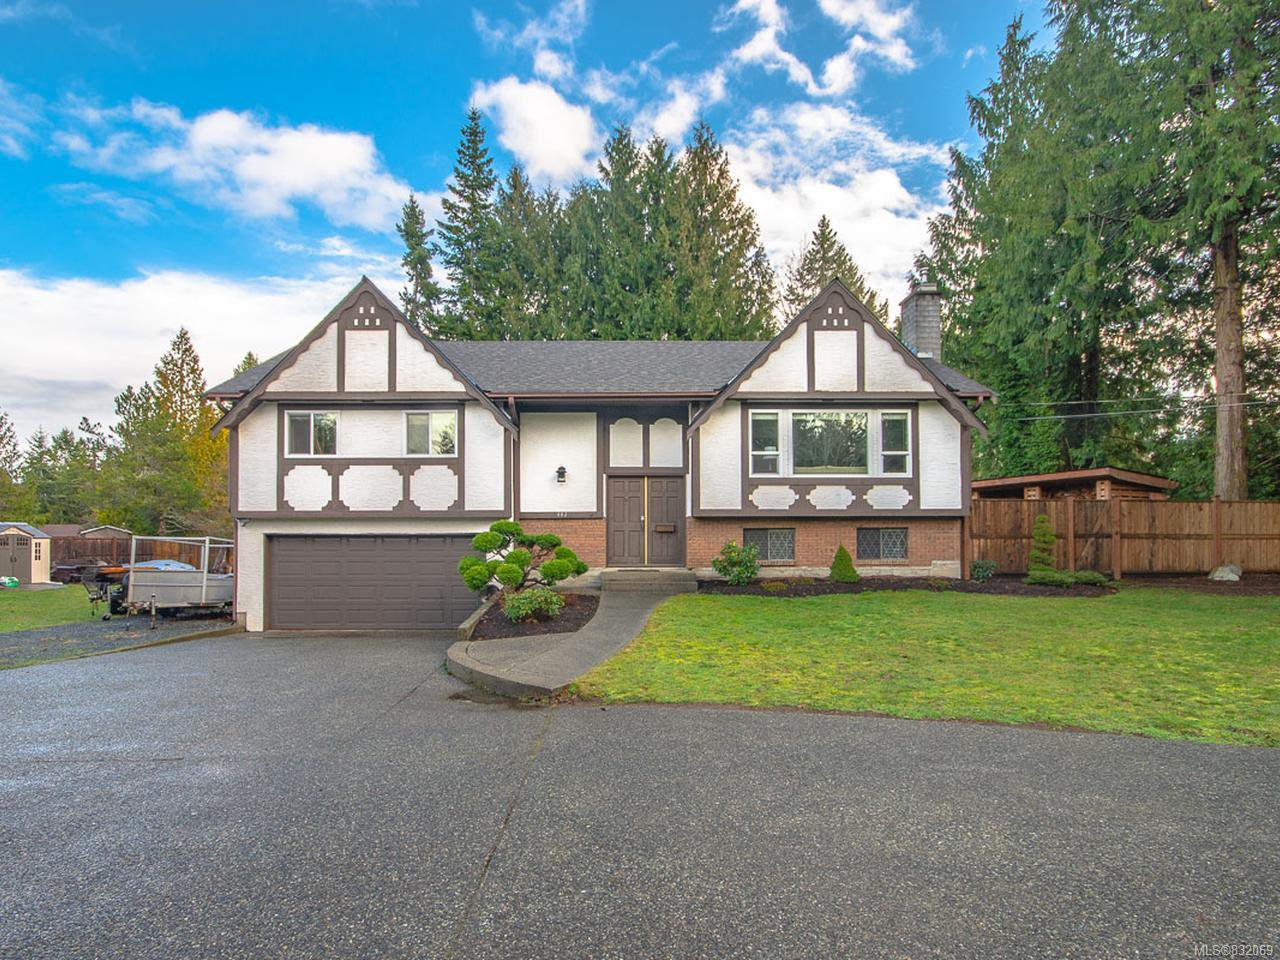 Main Photo: 802 Terrien Way in PARKSVILLE: PQ Parksville Single Family Detached for sale (Parksville/Qualicum)  : MLS®# 832069